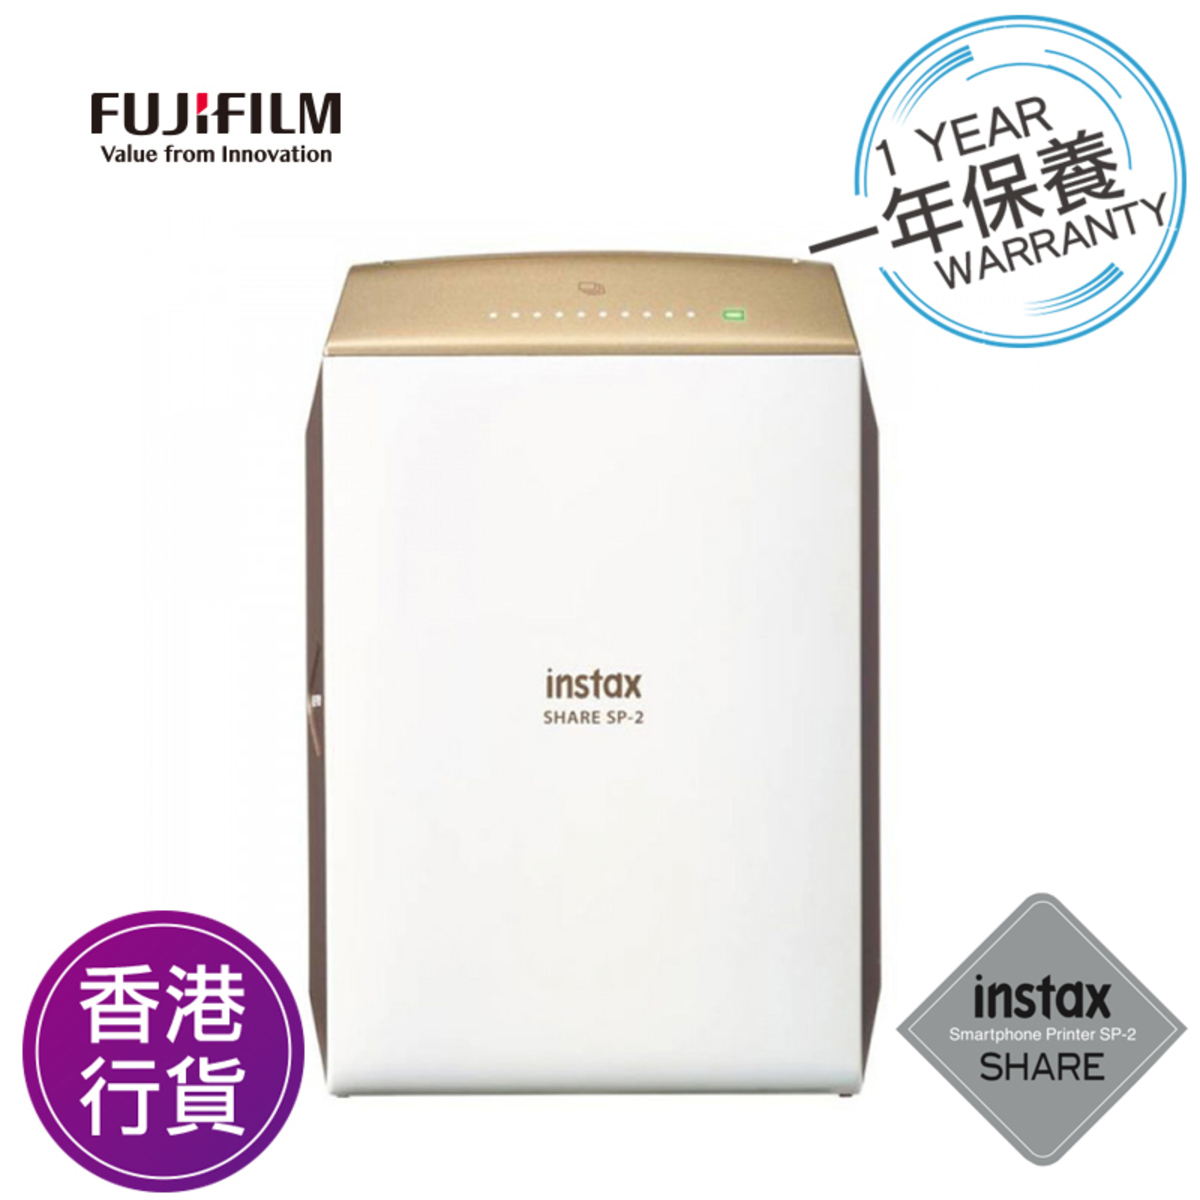 Instax Share SP2 Printer Gold One Year Warranty